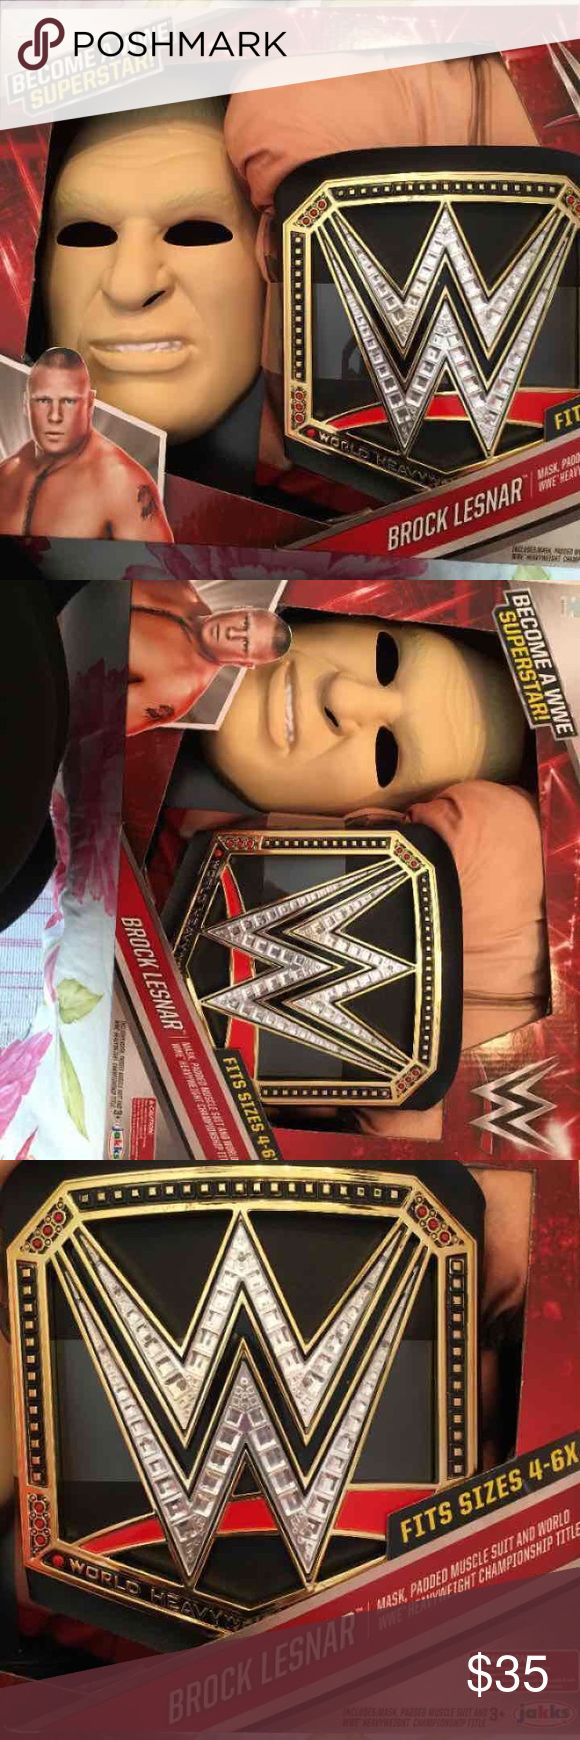 WWE Brock Lesnar Kids Costume Halloween WWE Brock Lesnar Kids Costume Includes mask, padded muscle suit & championship belt Summer slam Halloween, dress up, pretend play Costumes Halloween